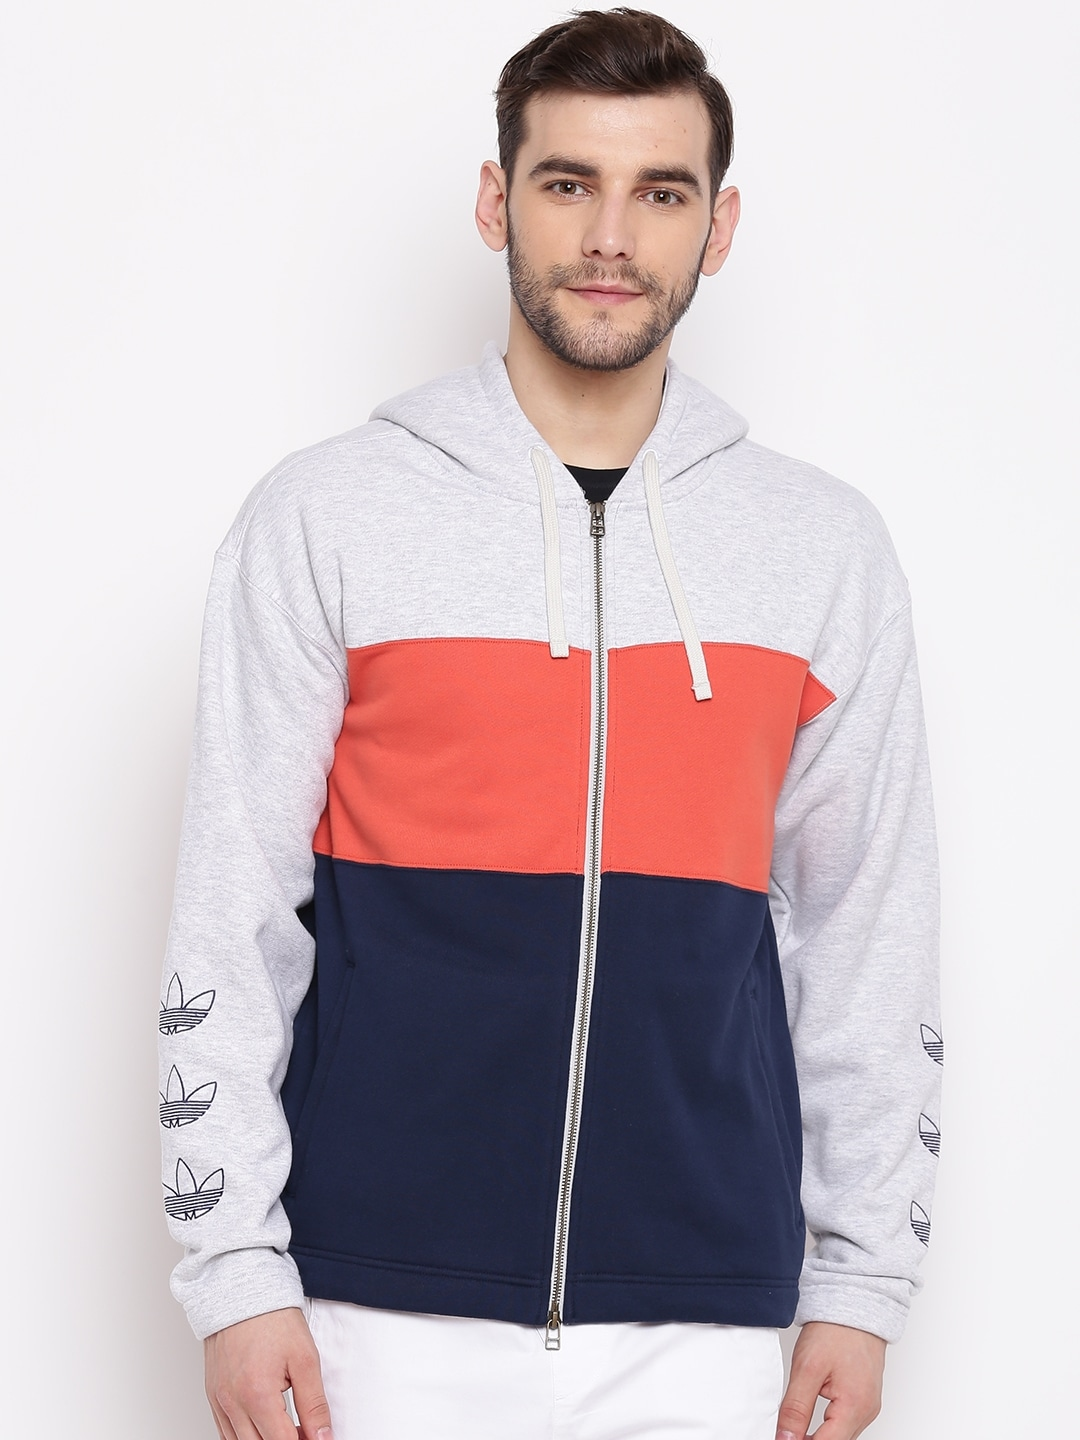 676da2228da7 Adidas Originals Sweatshirts - Buy Adidas Originals Sweatshirts Online in  India